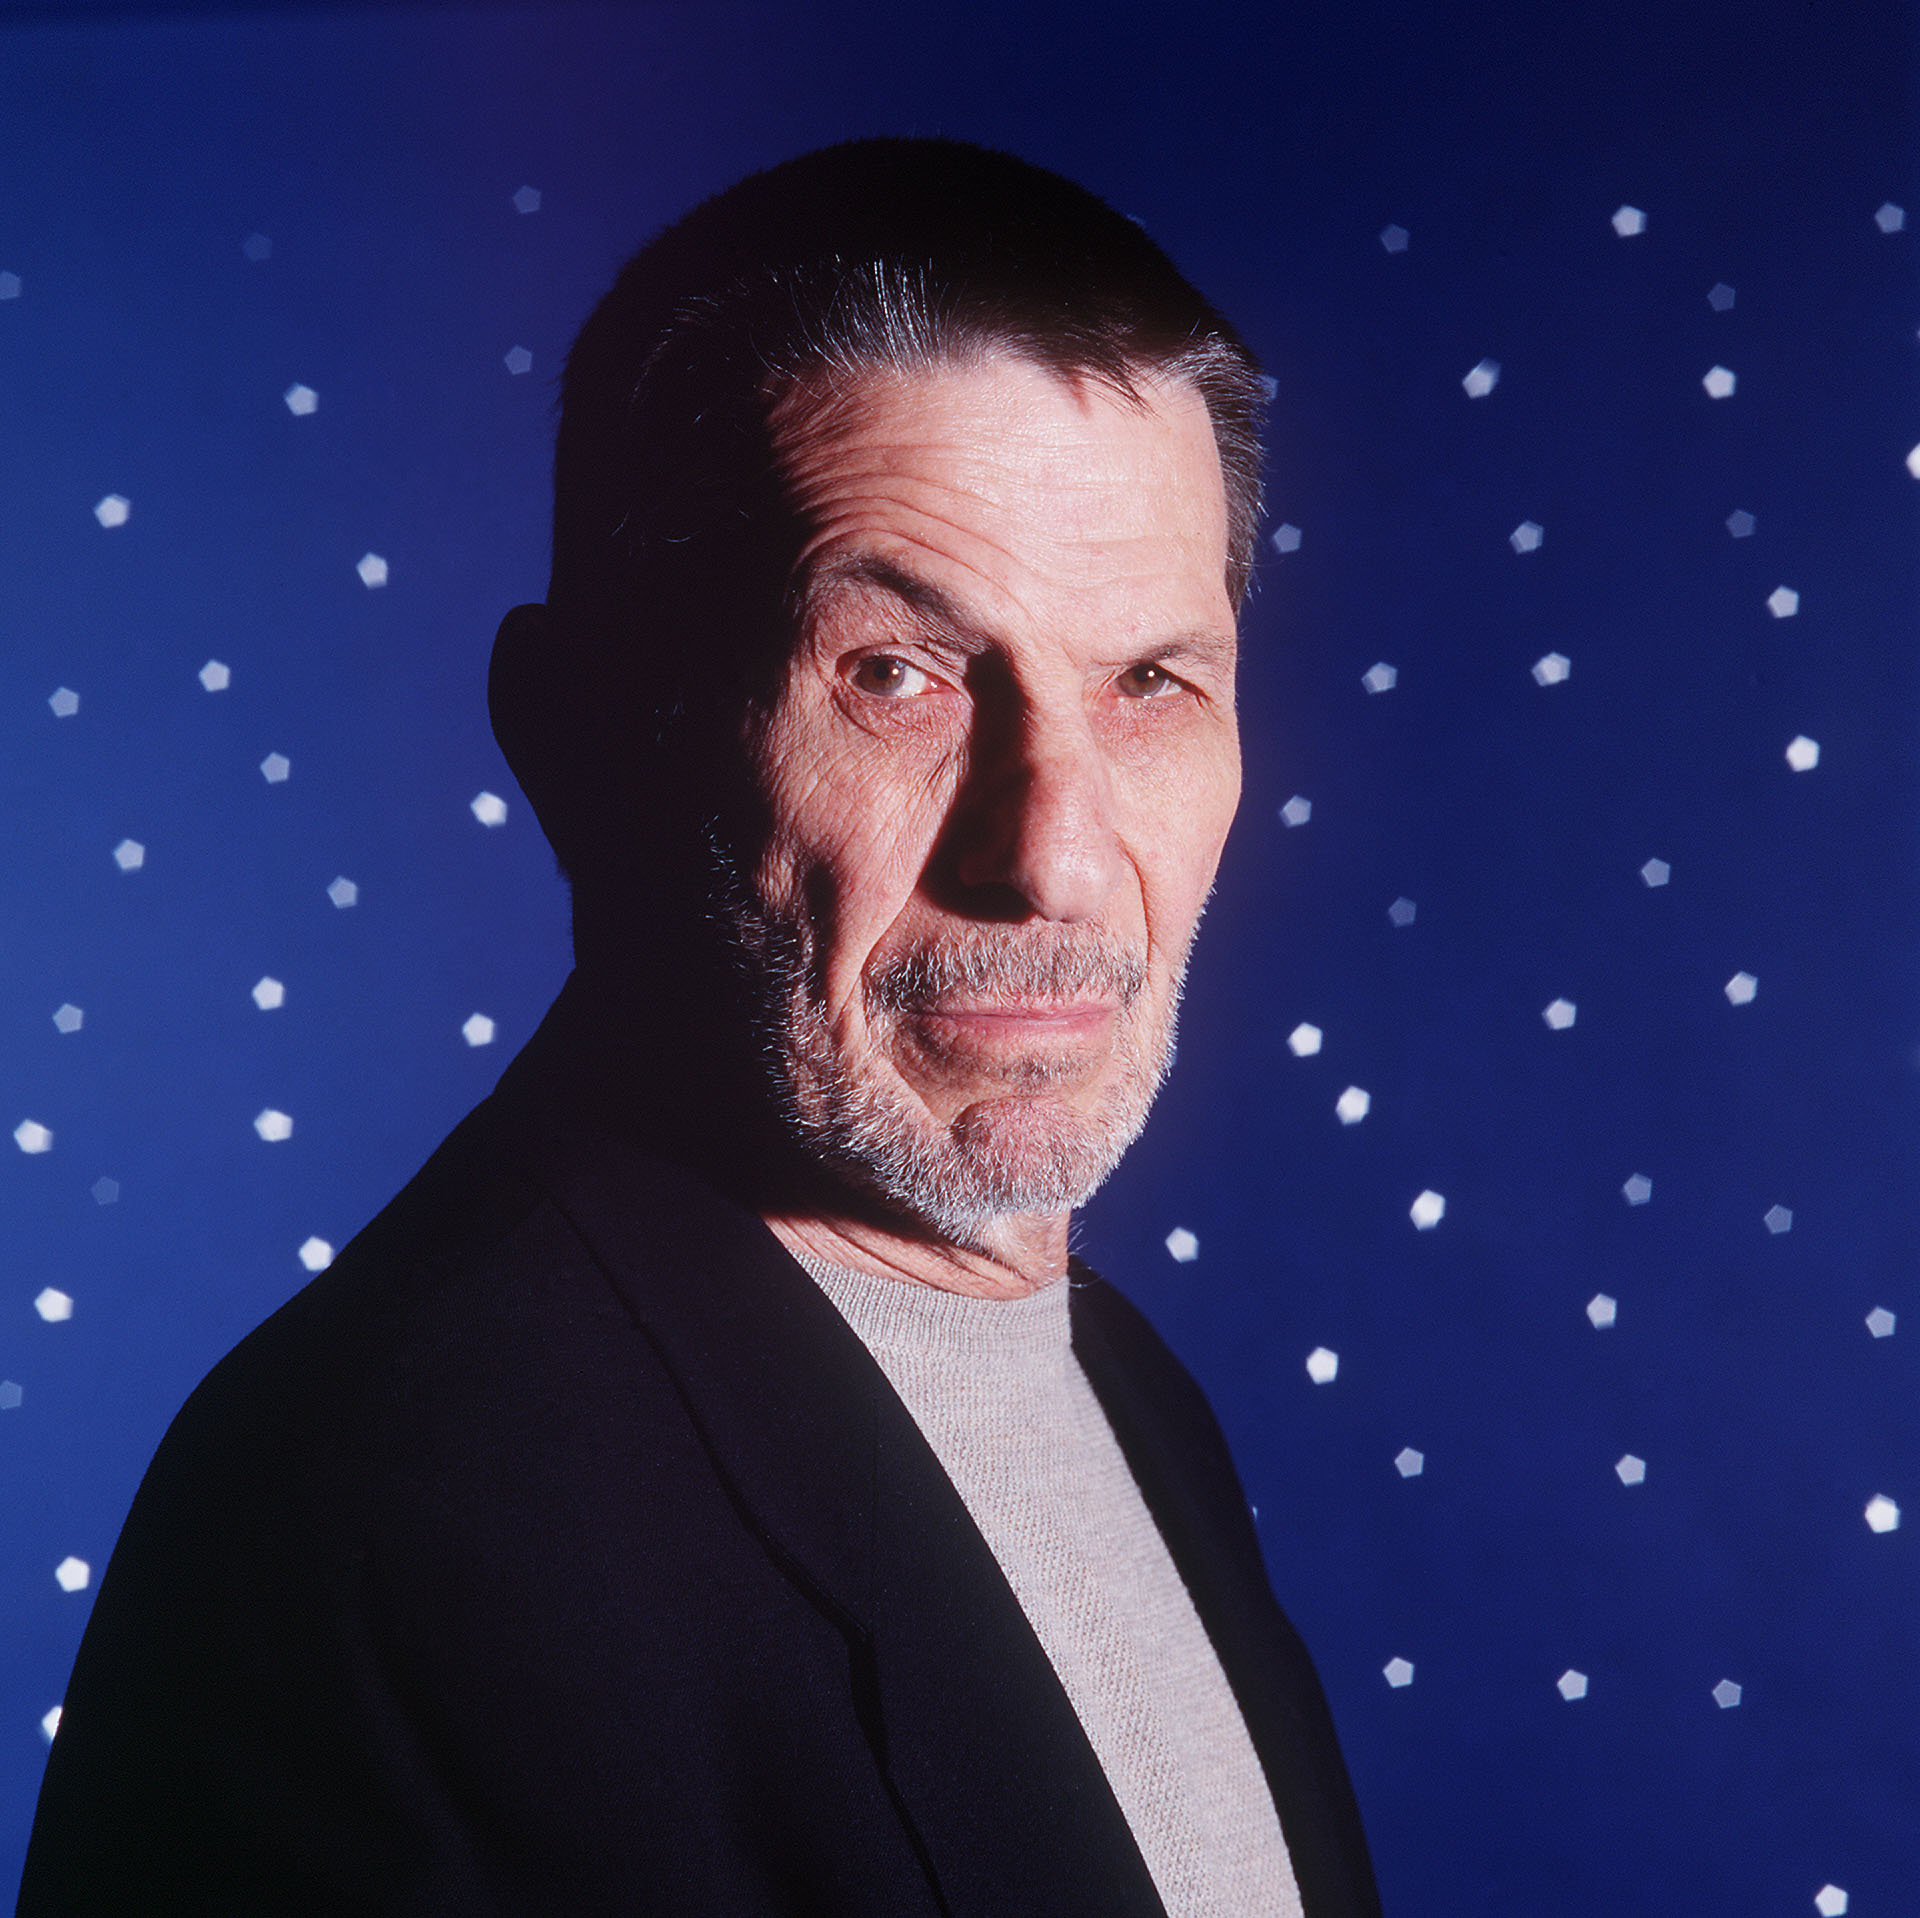 Actor Leonard Nimoy poses for a photograph in New York City on April 28, 1999. Photo by Todd Plitt/ImageDirect*** SPECIAL RAT